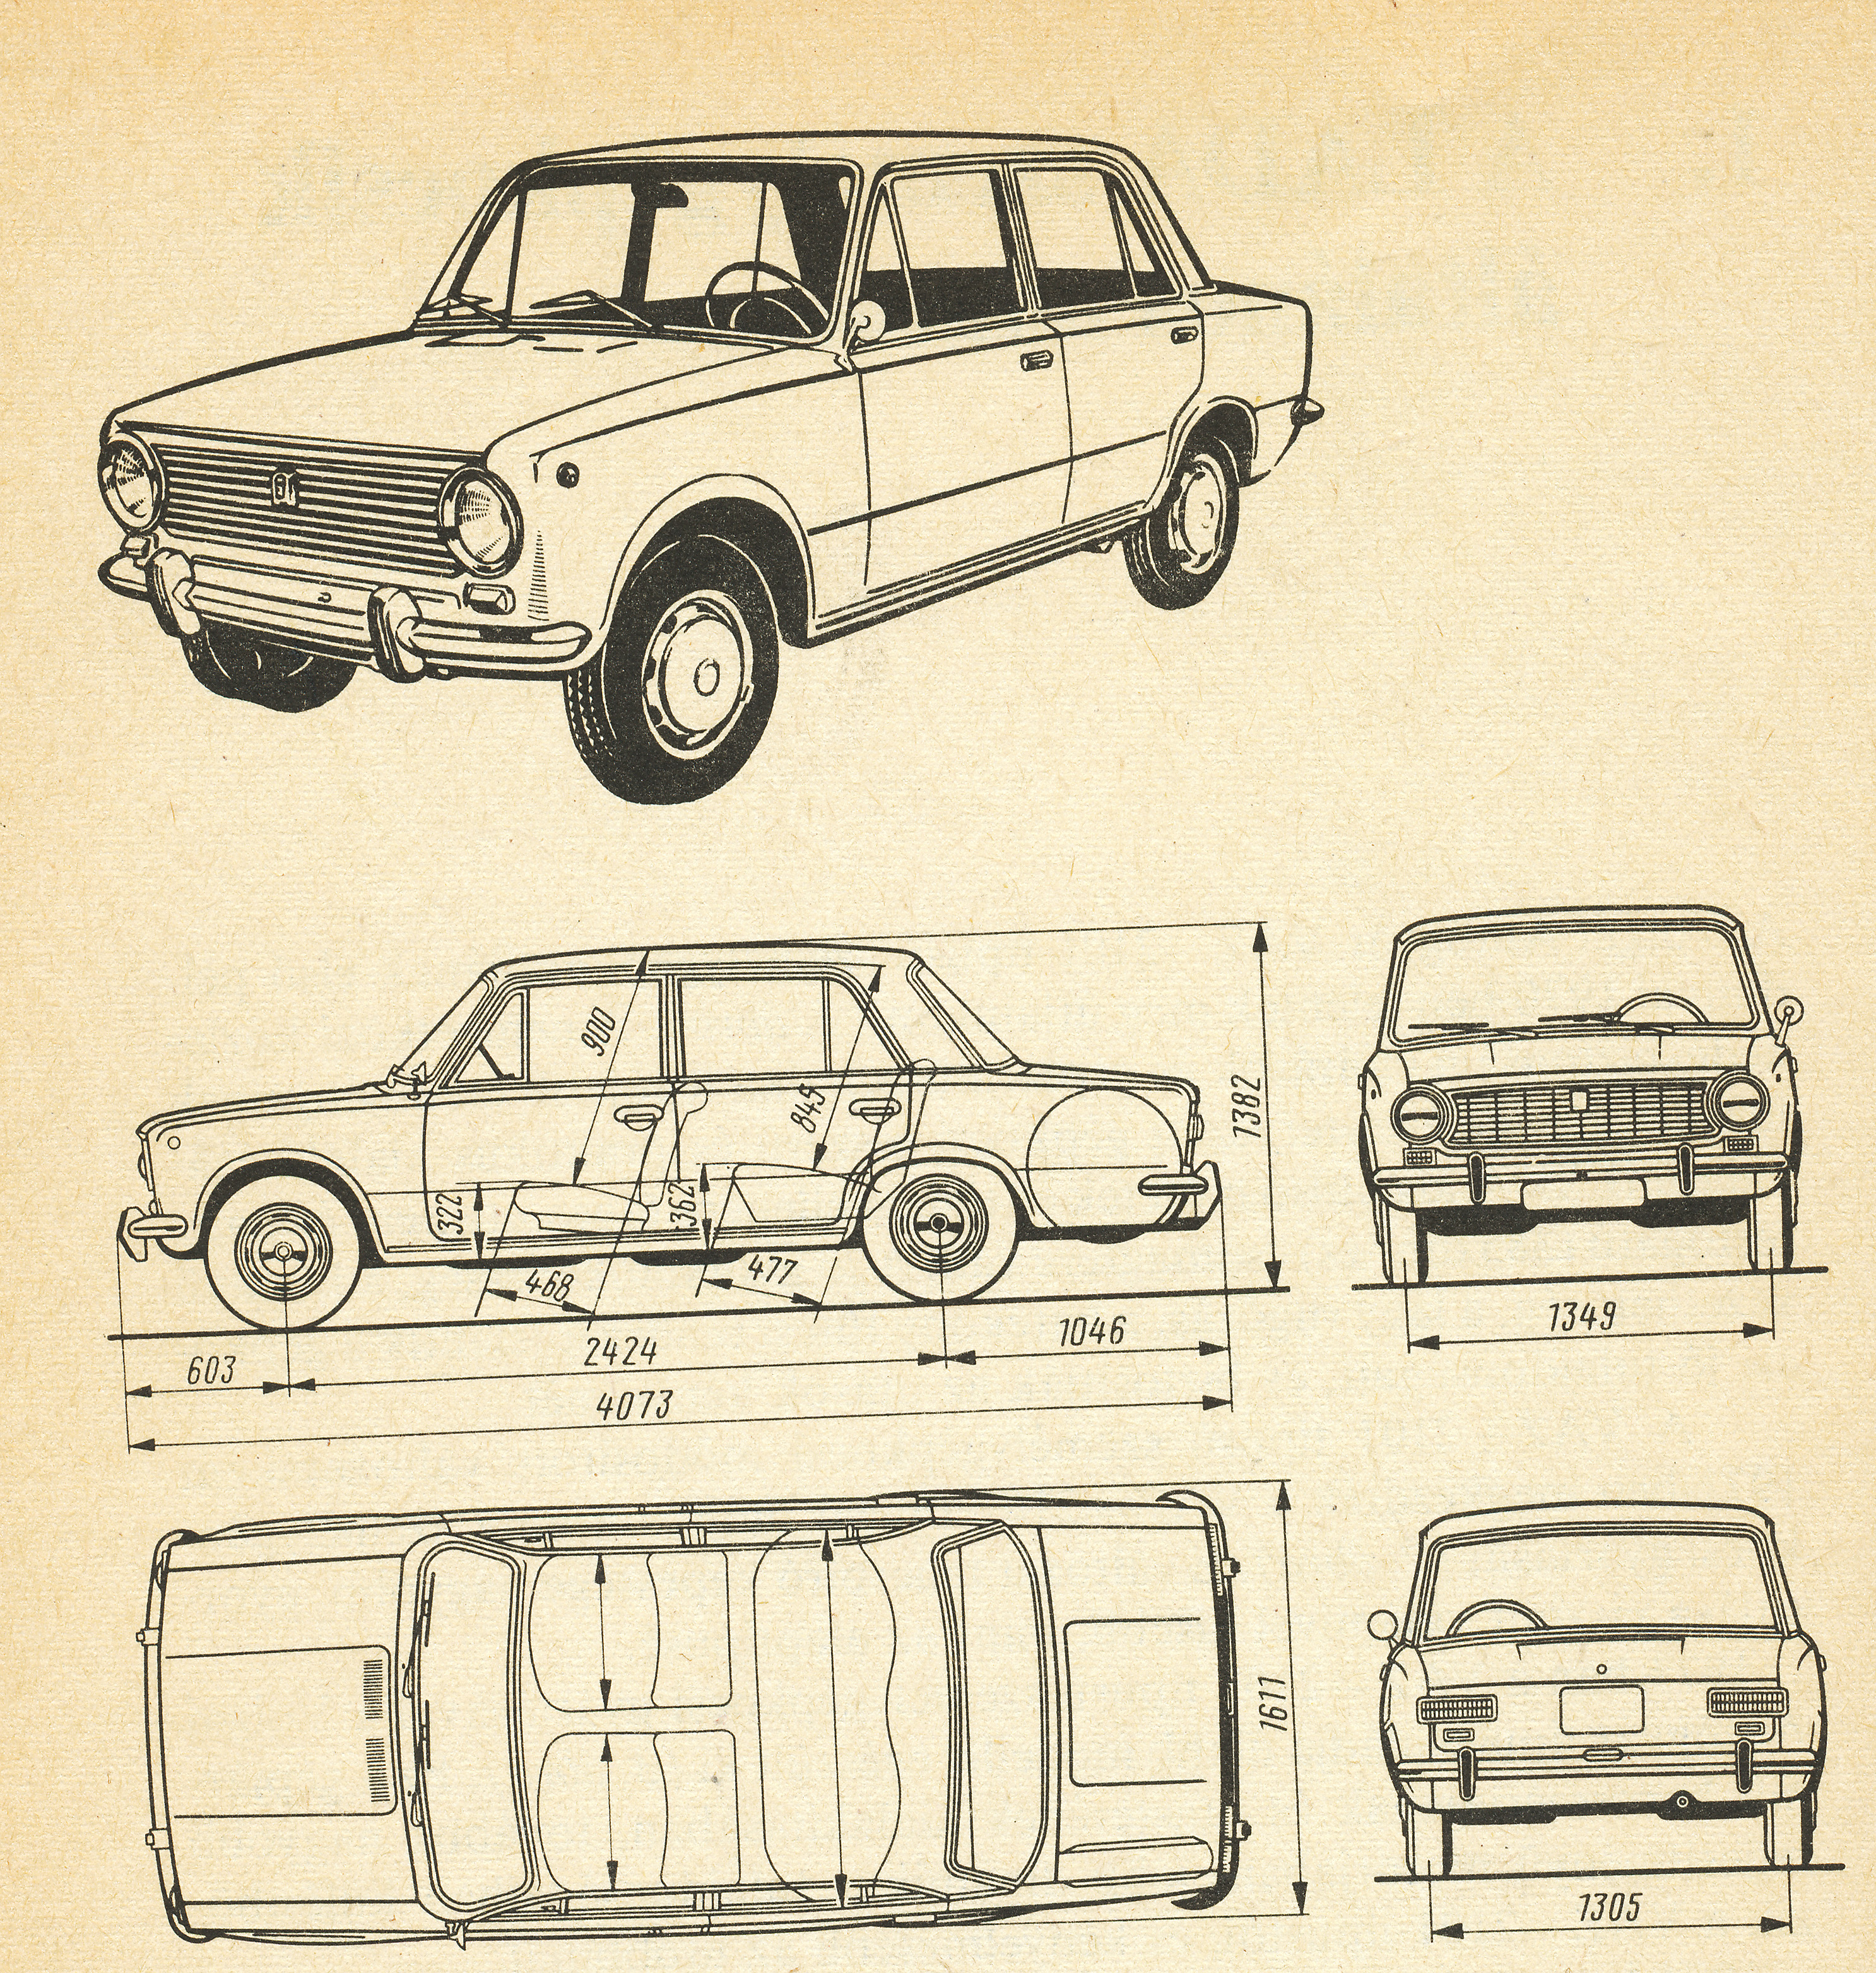 Car texture in a paper lada textures for photoshop free download car texture in a paper lada free malvernweather Images